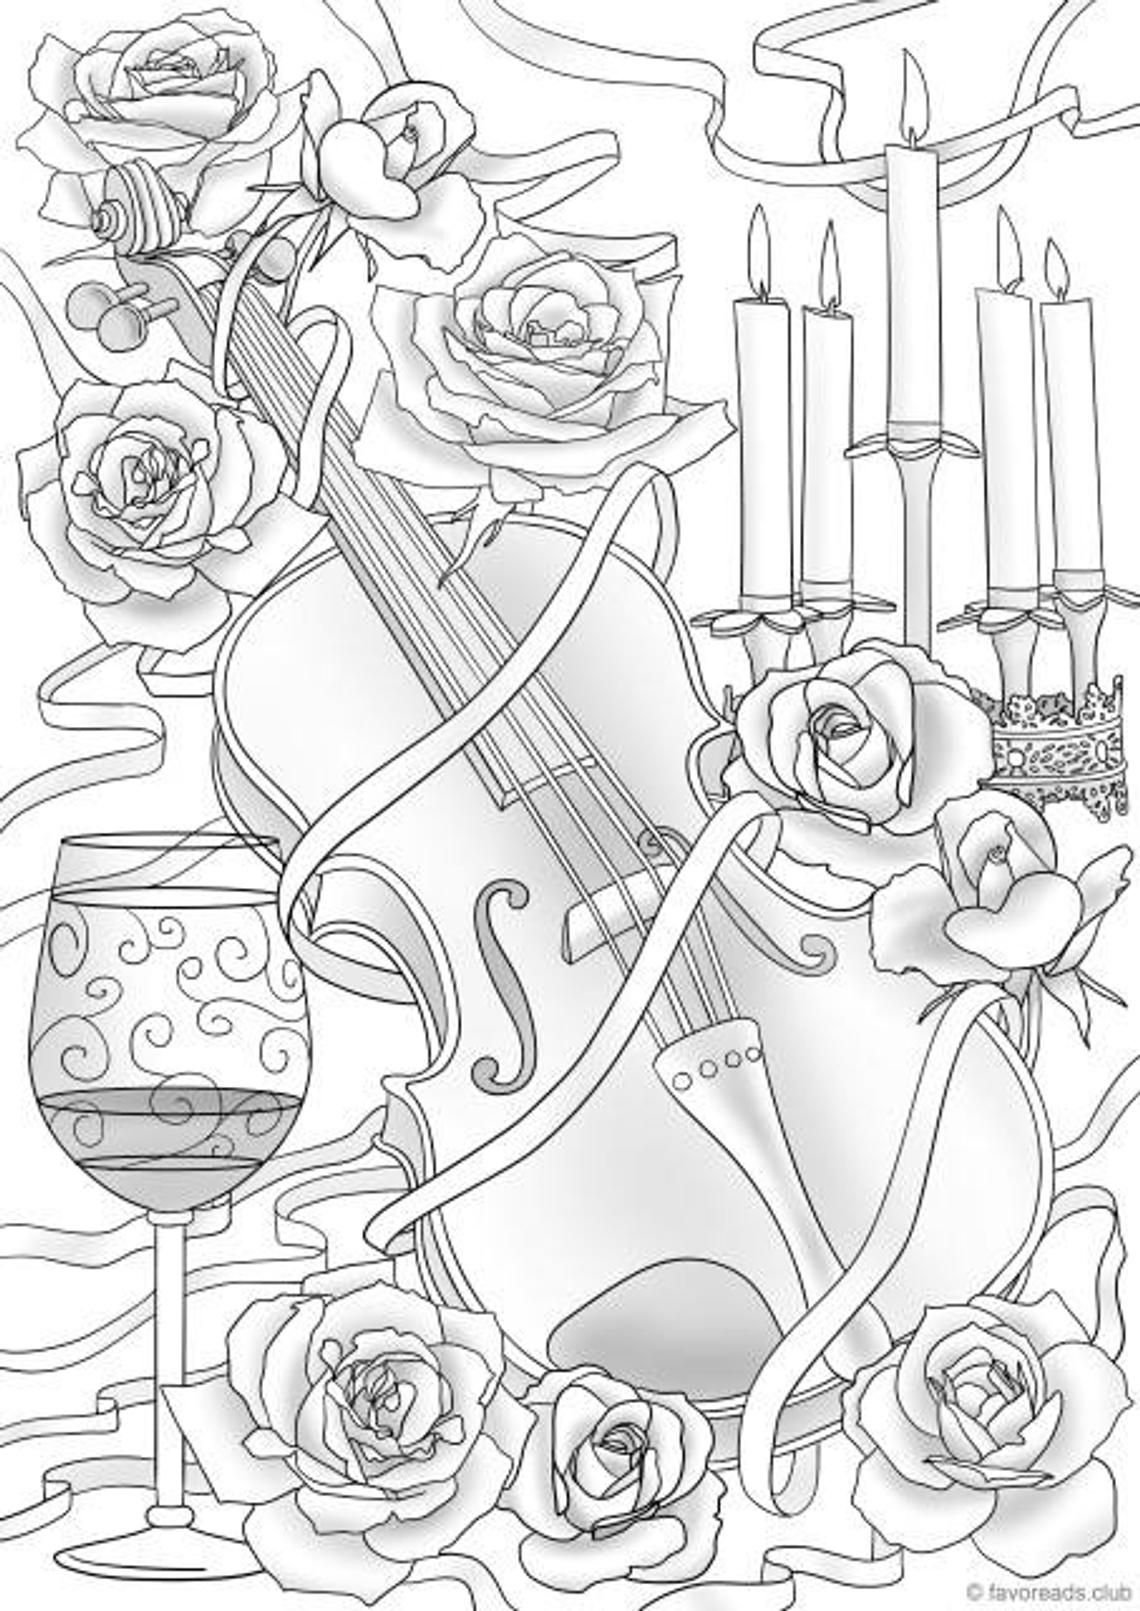 Violin And Flowers Printable Adult Coloring Page From Favoreads